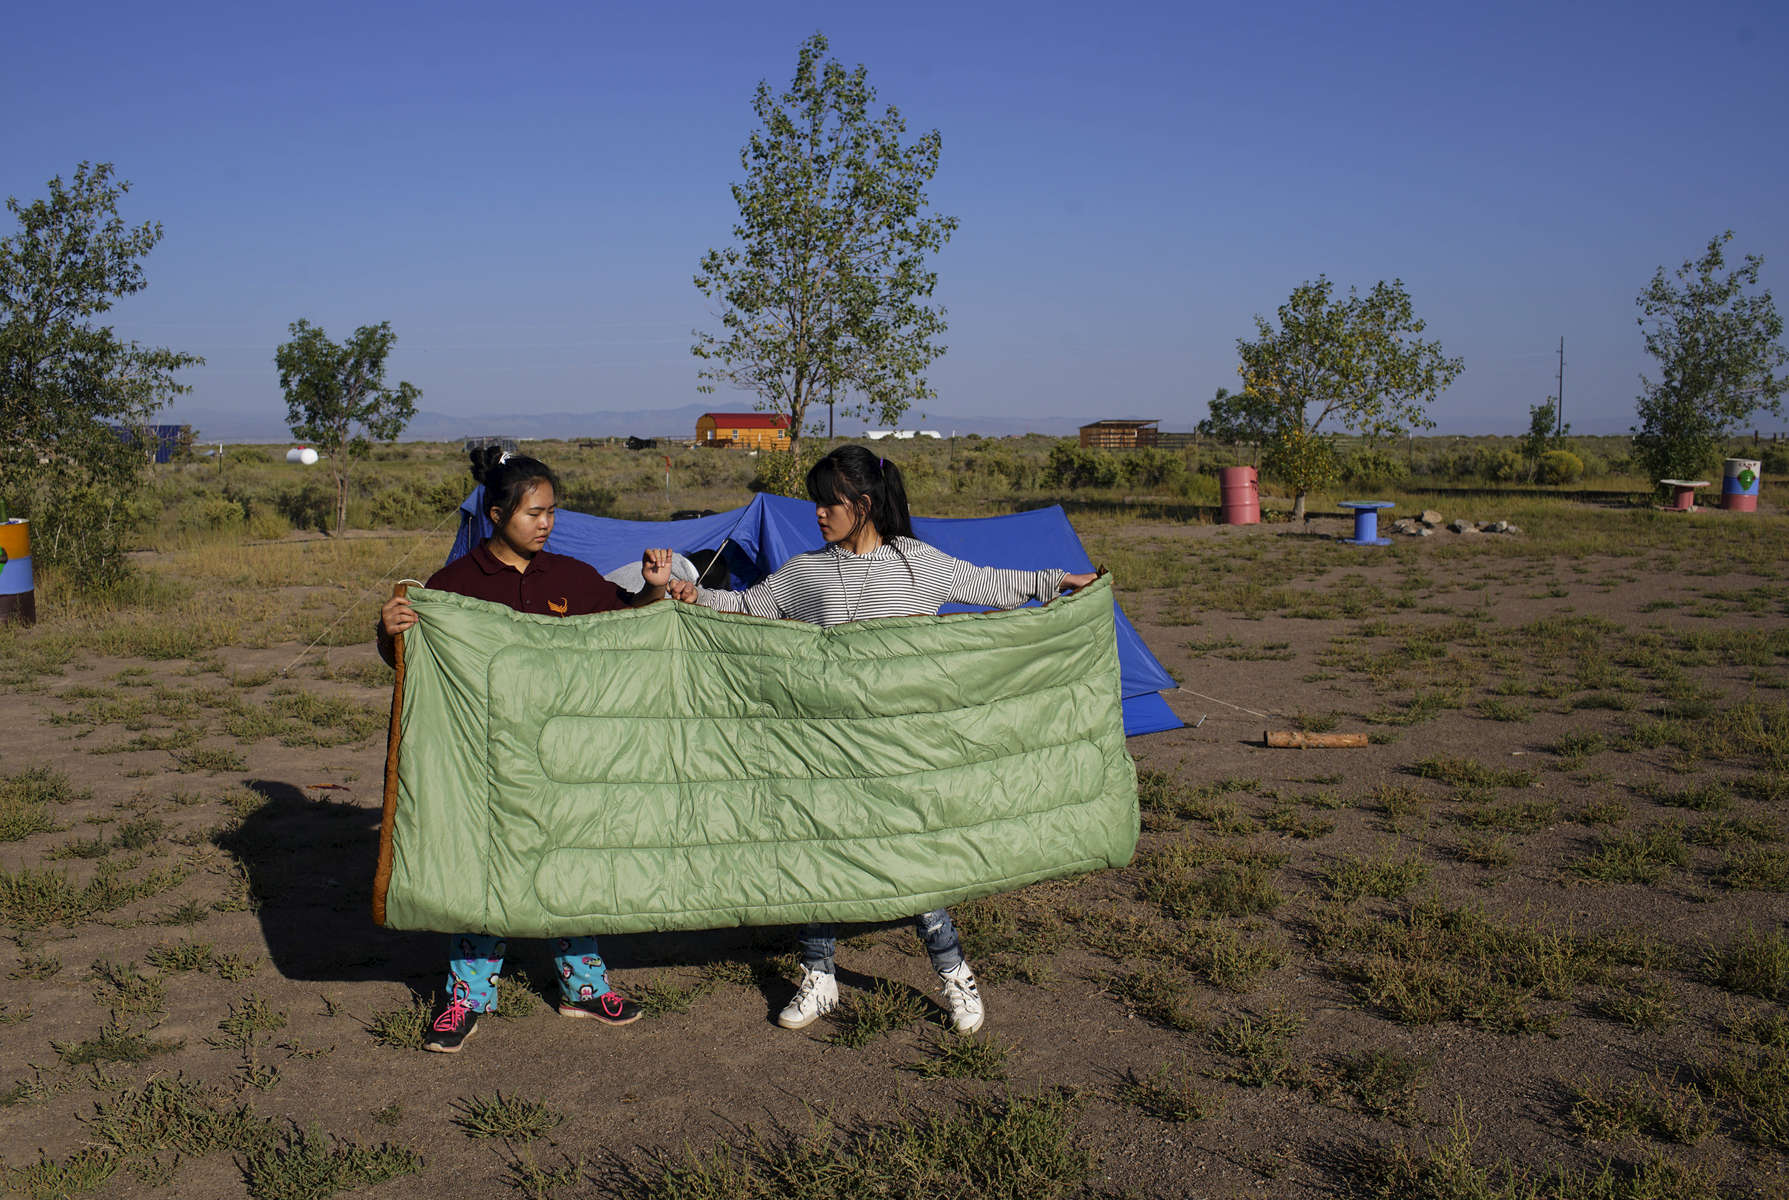 Shrostina Magar, 14, left and Puja Rai, 14, right, unfurl a sleeping bag before placing it in their tent at their campsite in Hooper, Colo. on Sept. 2, 2017.